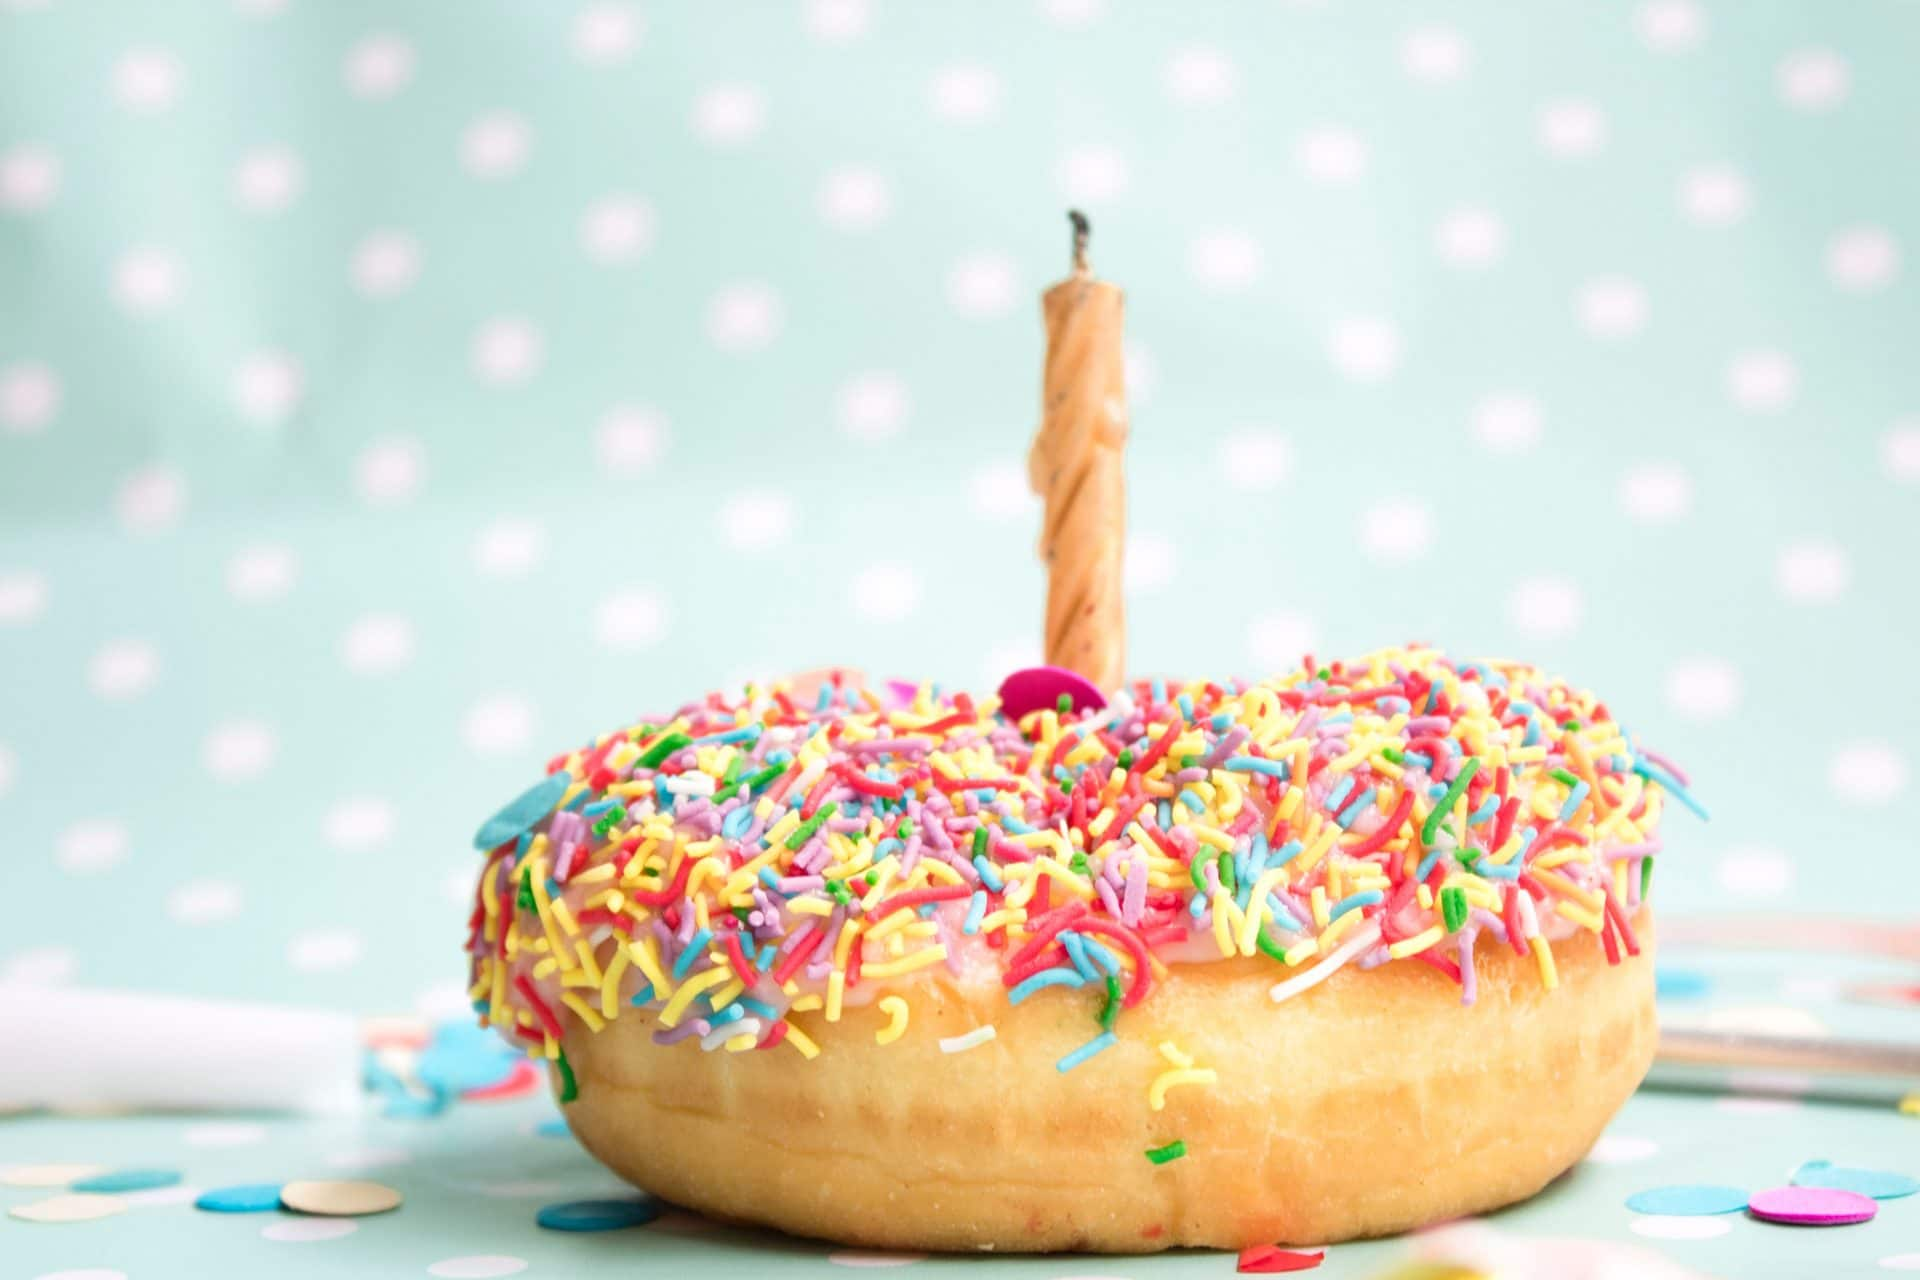 donut with sprinkles and candle